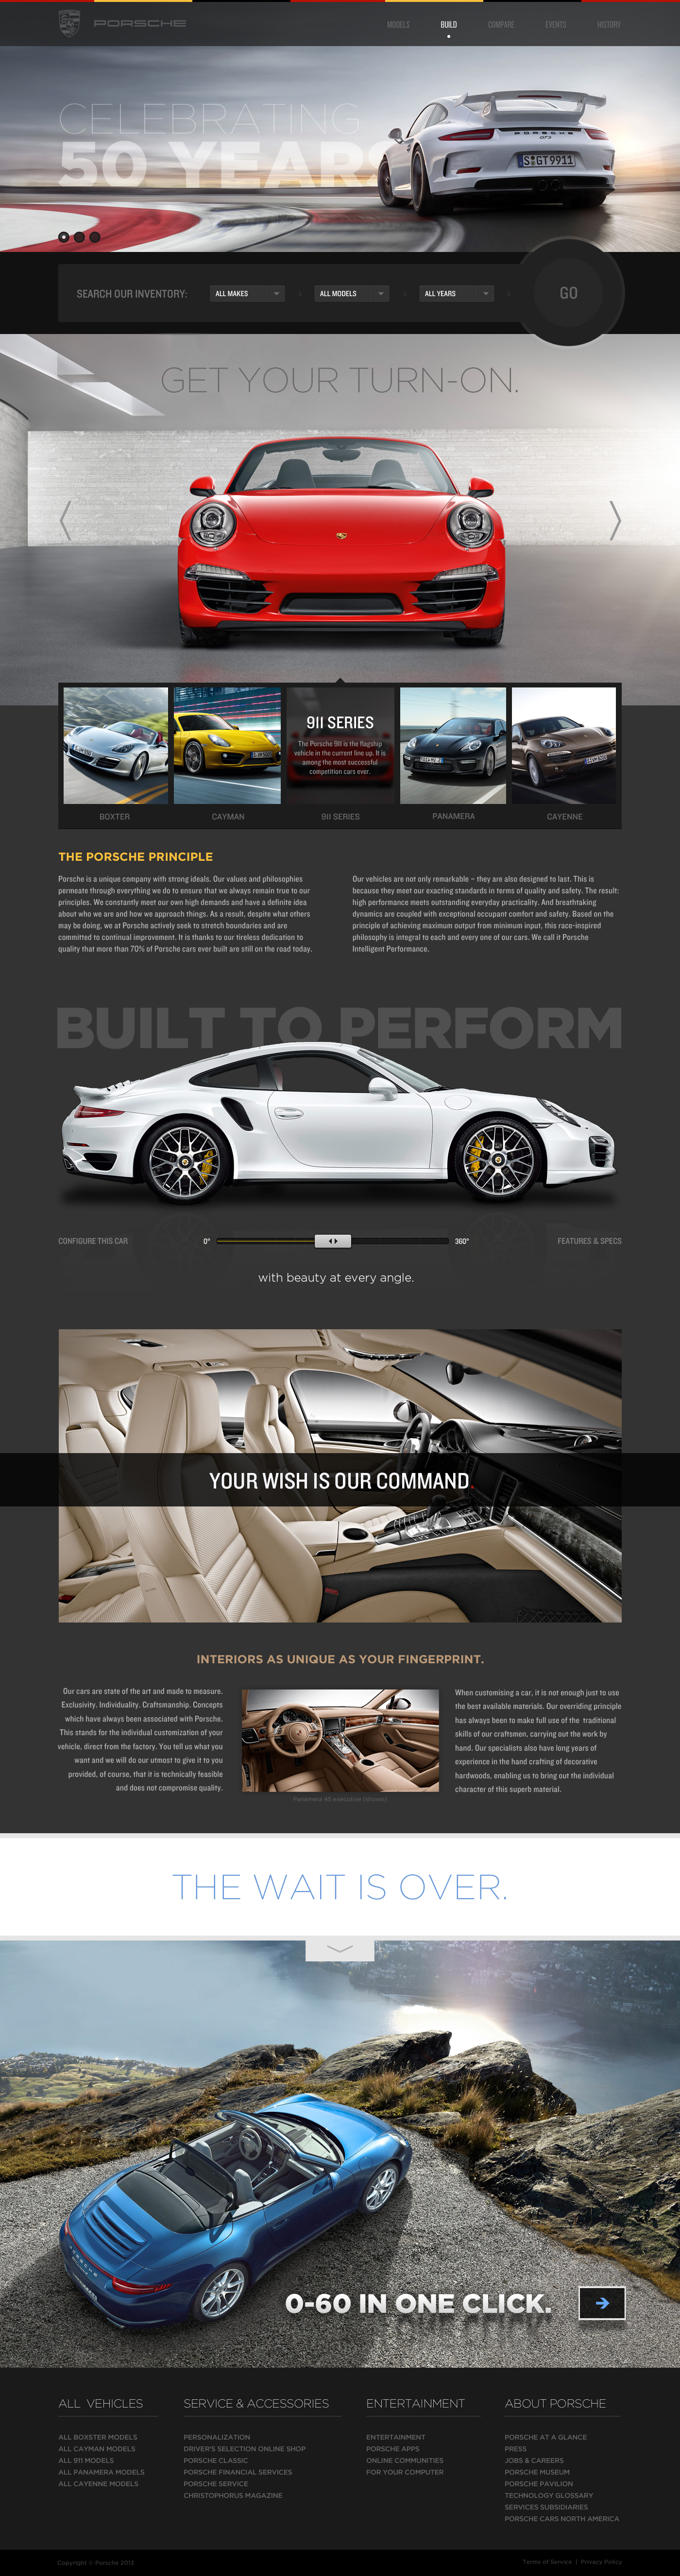 Cool Automotive Web Design On The Internet Porsche Automotive - Cool car websites